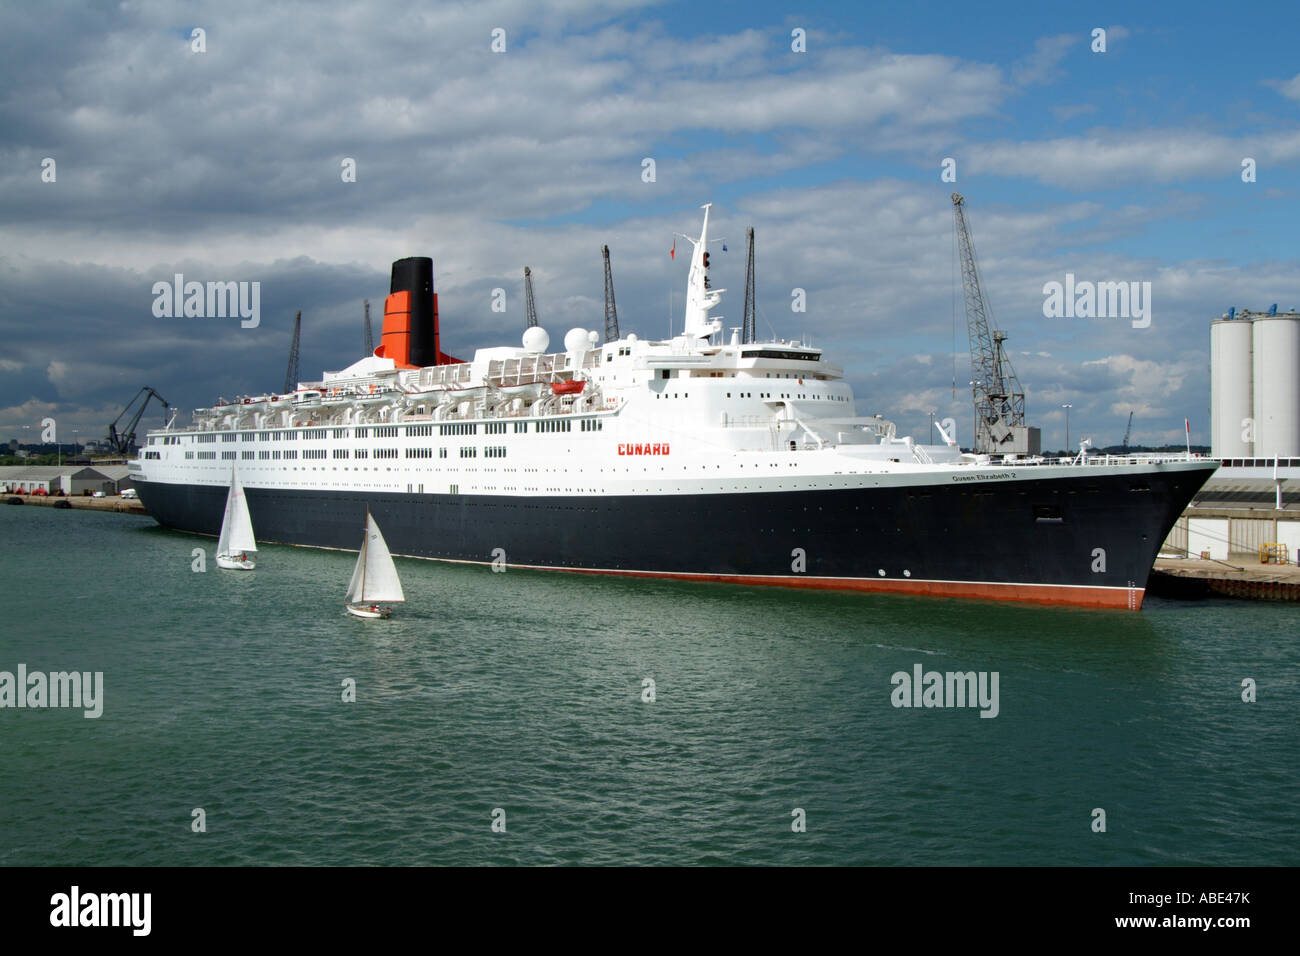 Queen Elizabeth 2 a Cunard cruise liner berthed in the Port of Southampton England UK - Stock Image